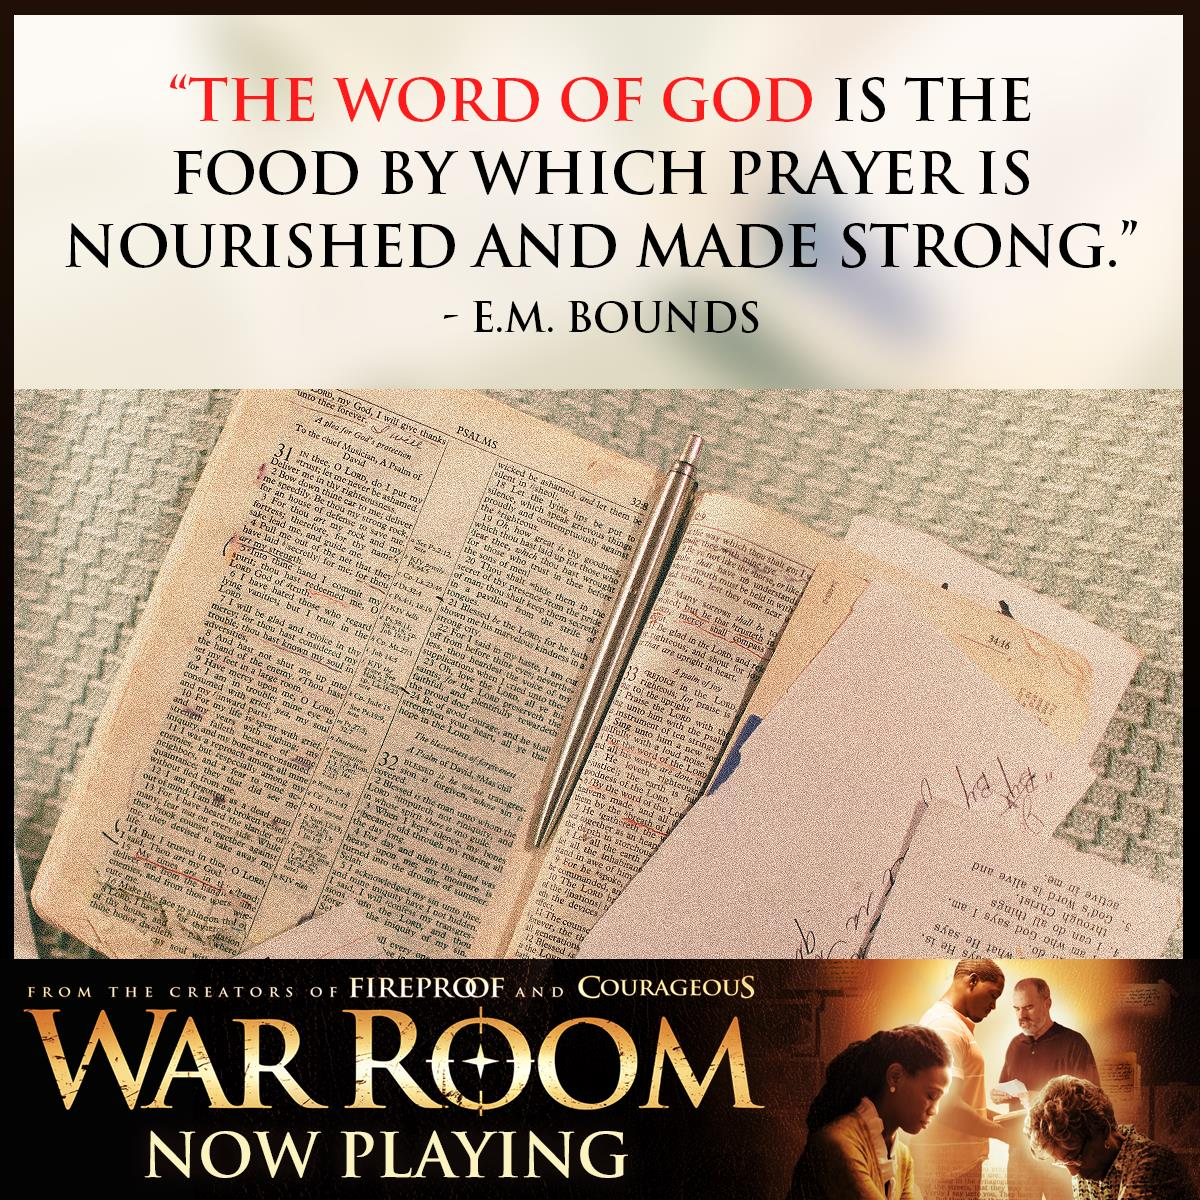 Join The War Room Bible Study This Week At New Day